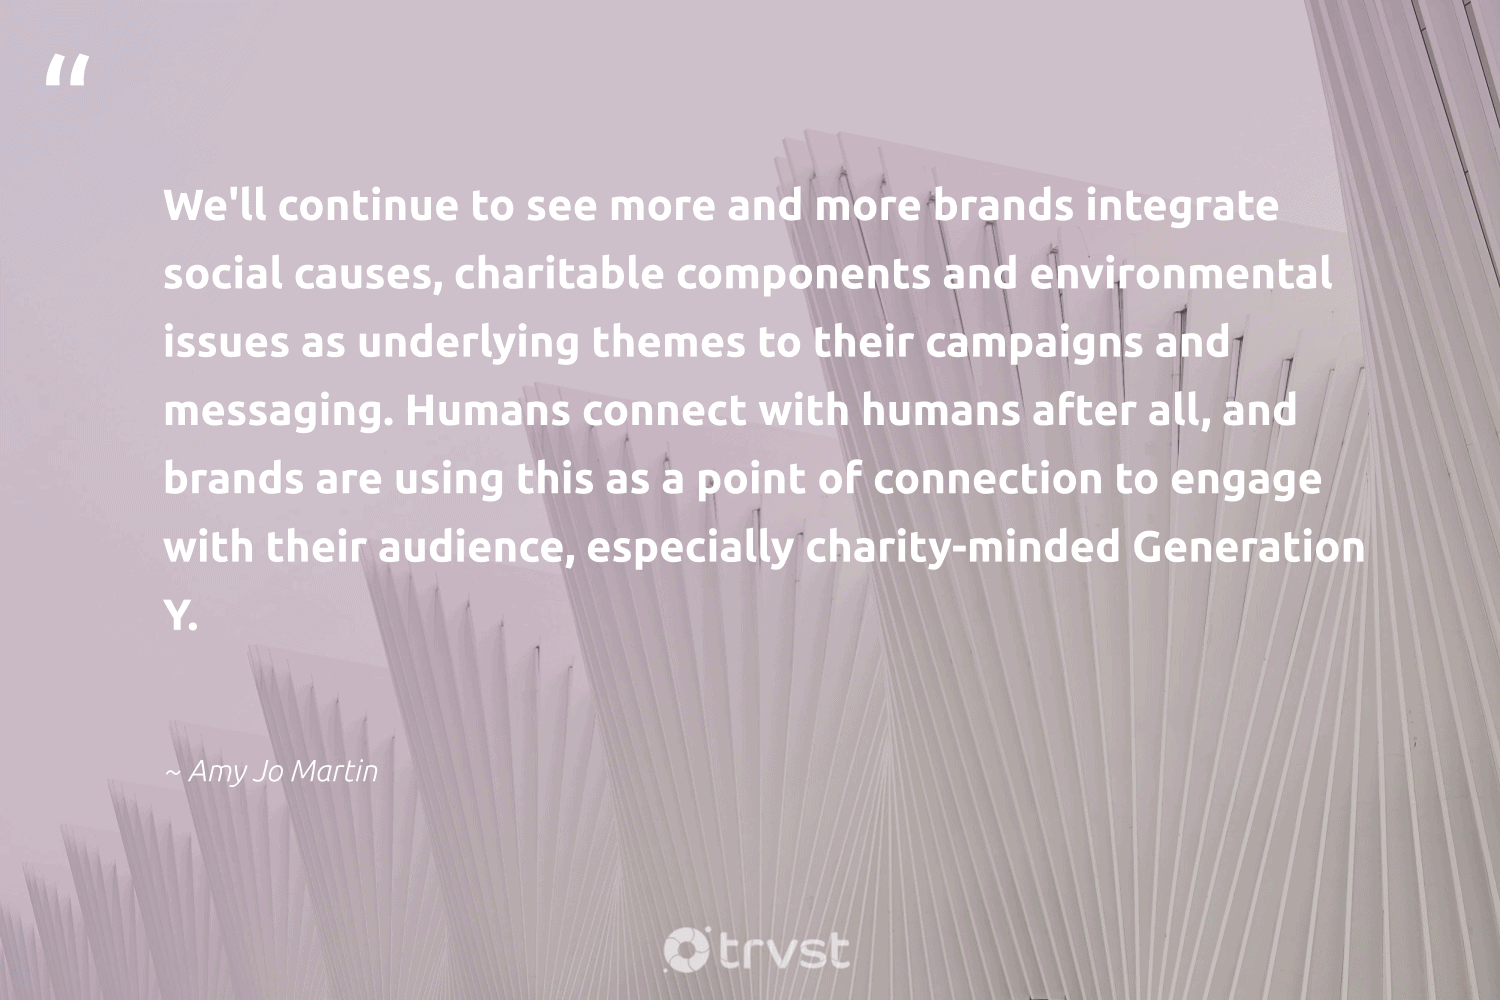 """""""We'll continue to see more and more brands integrate social causes, charitable components and environmental issues as underlying themes to their campaigns and messaging. Humans connect with humans after all, and brands are using this as a point of connection to engage with their audience, especially charity-minded Generation Y.""""  - Amy Jo Martin #trvst #quotes #environmental #causes #fundraising #sharedresponsibility #socialchange #changetheworld #Charity #dogood #society #ecoconscious"""